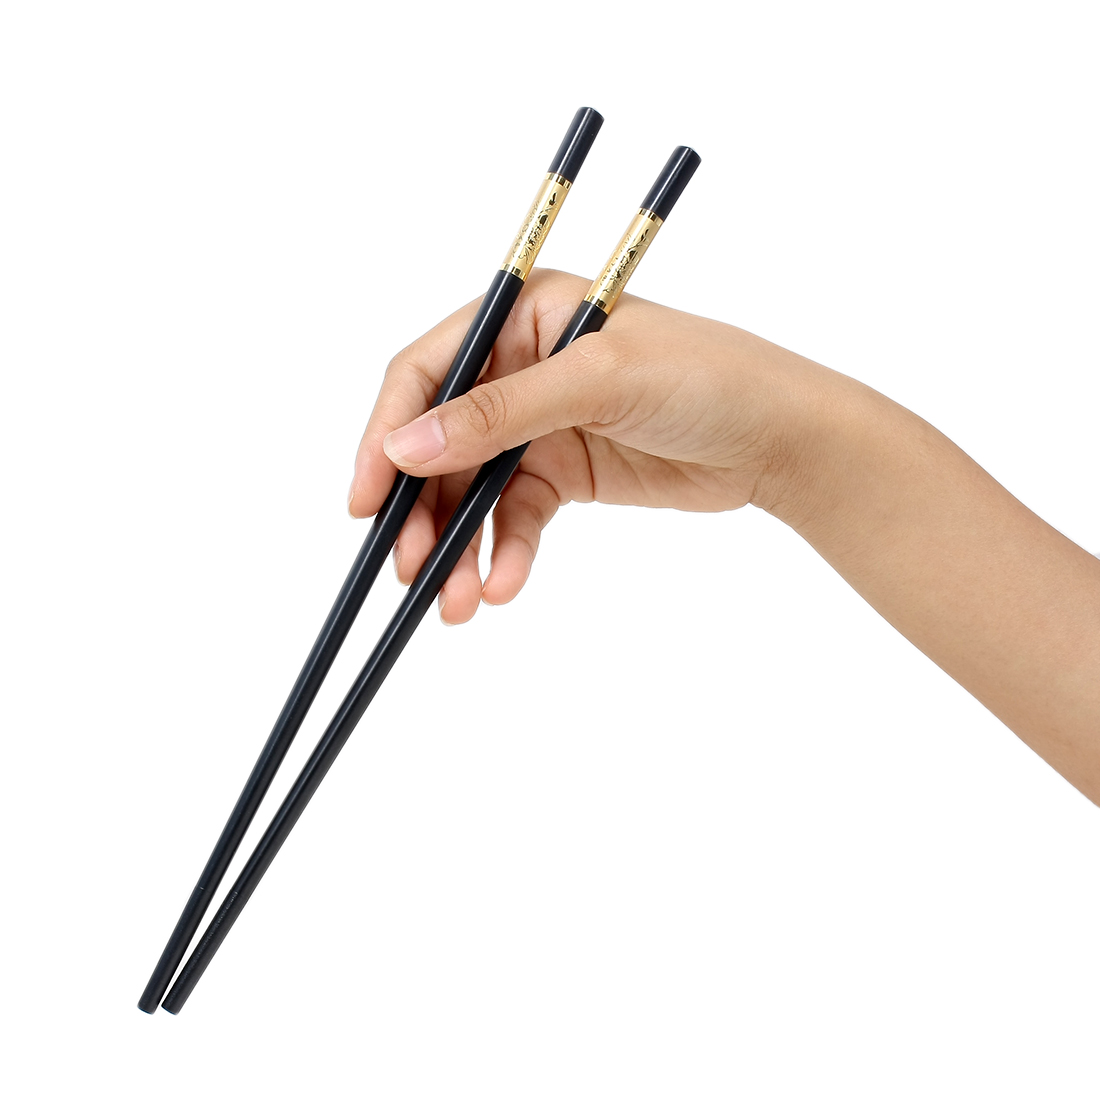 Casa-J Plastic Kitchen Flower Pattern Chopsticks Pair Black Gold Tone